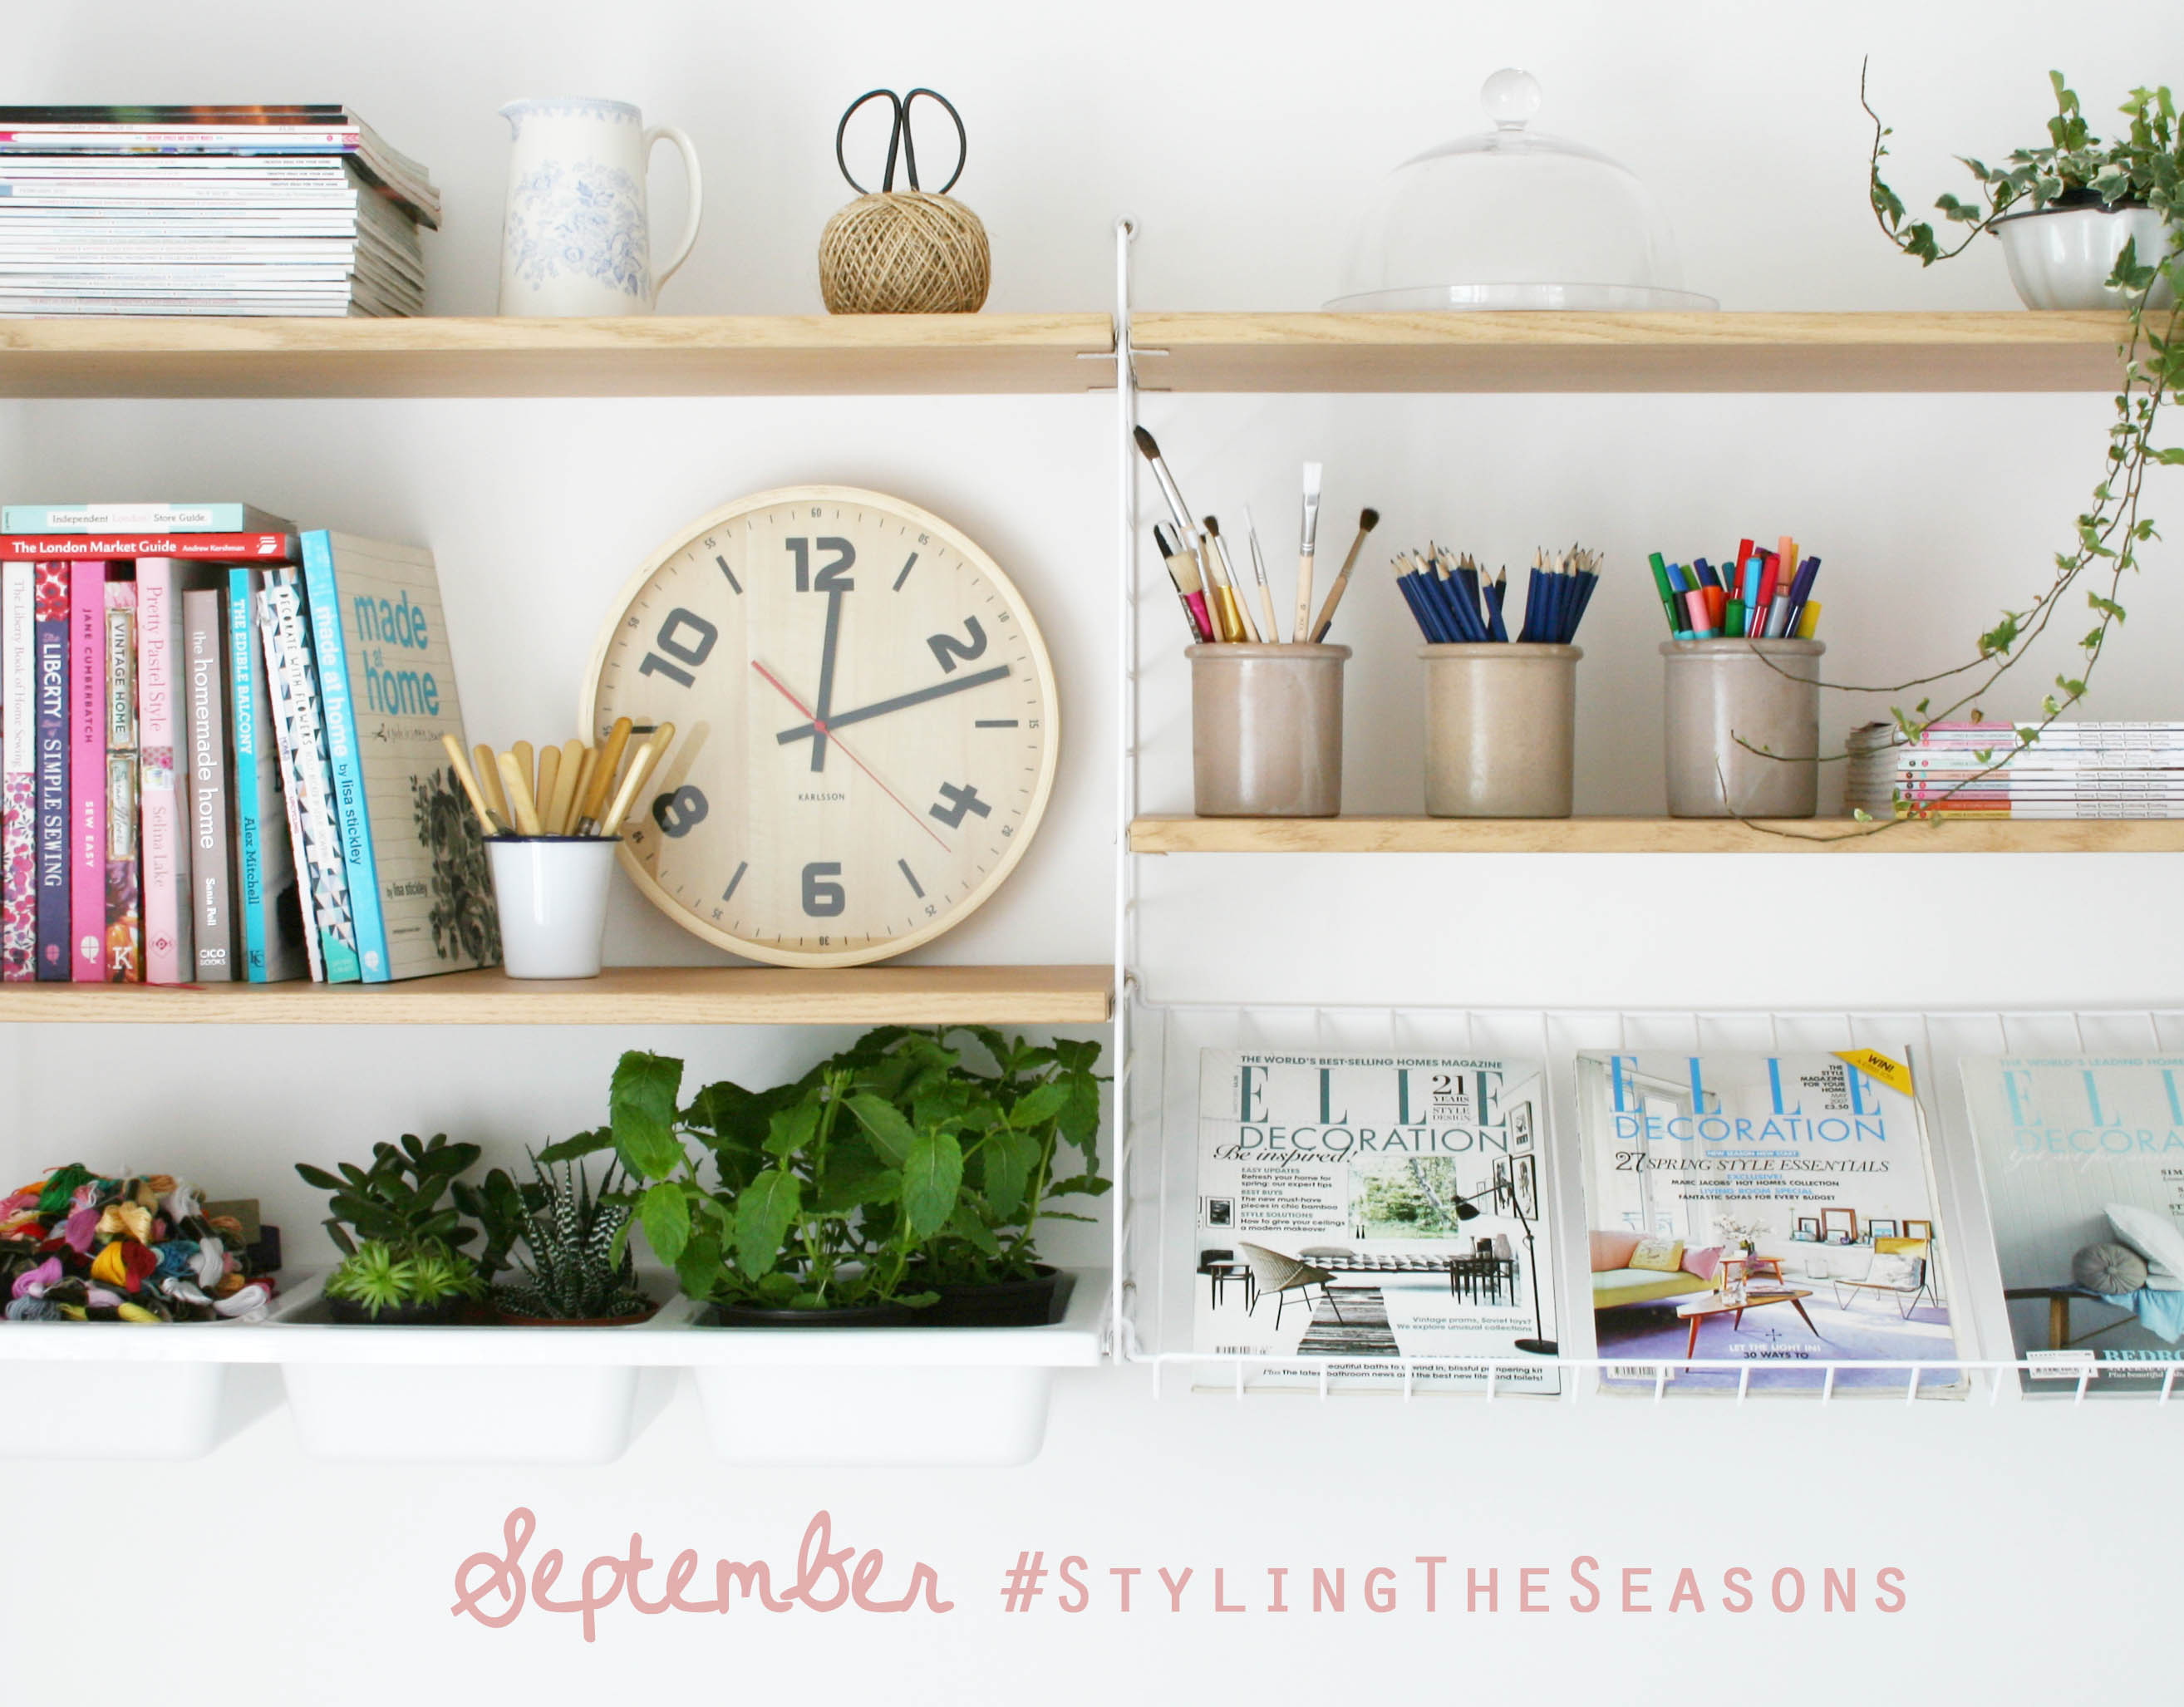 Styling the Seasons SEPTEMBER by Apartment Apothecary